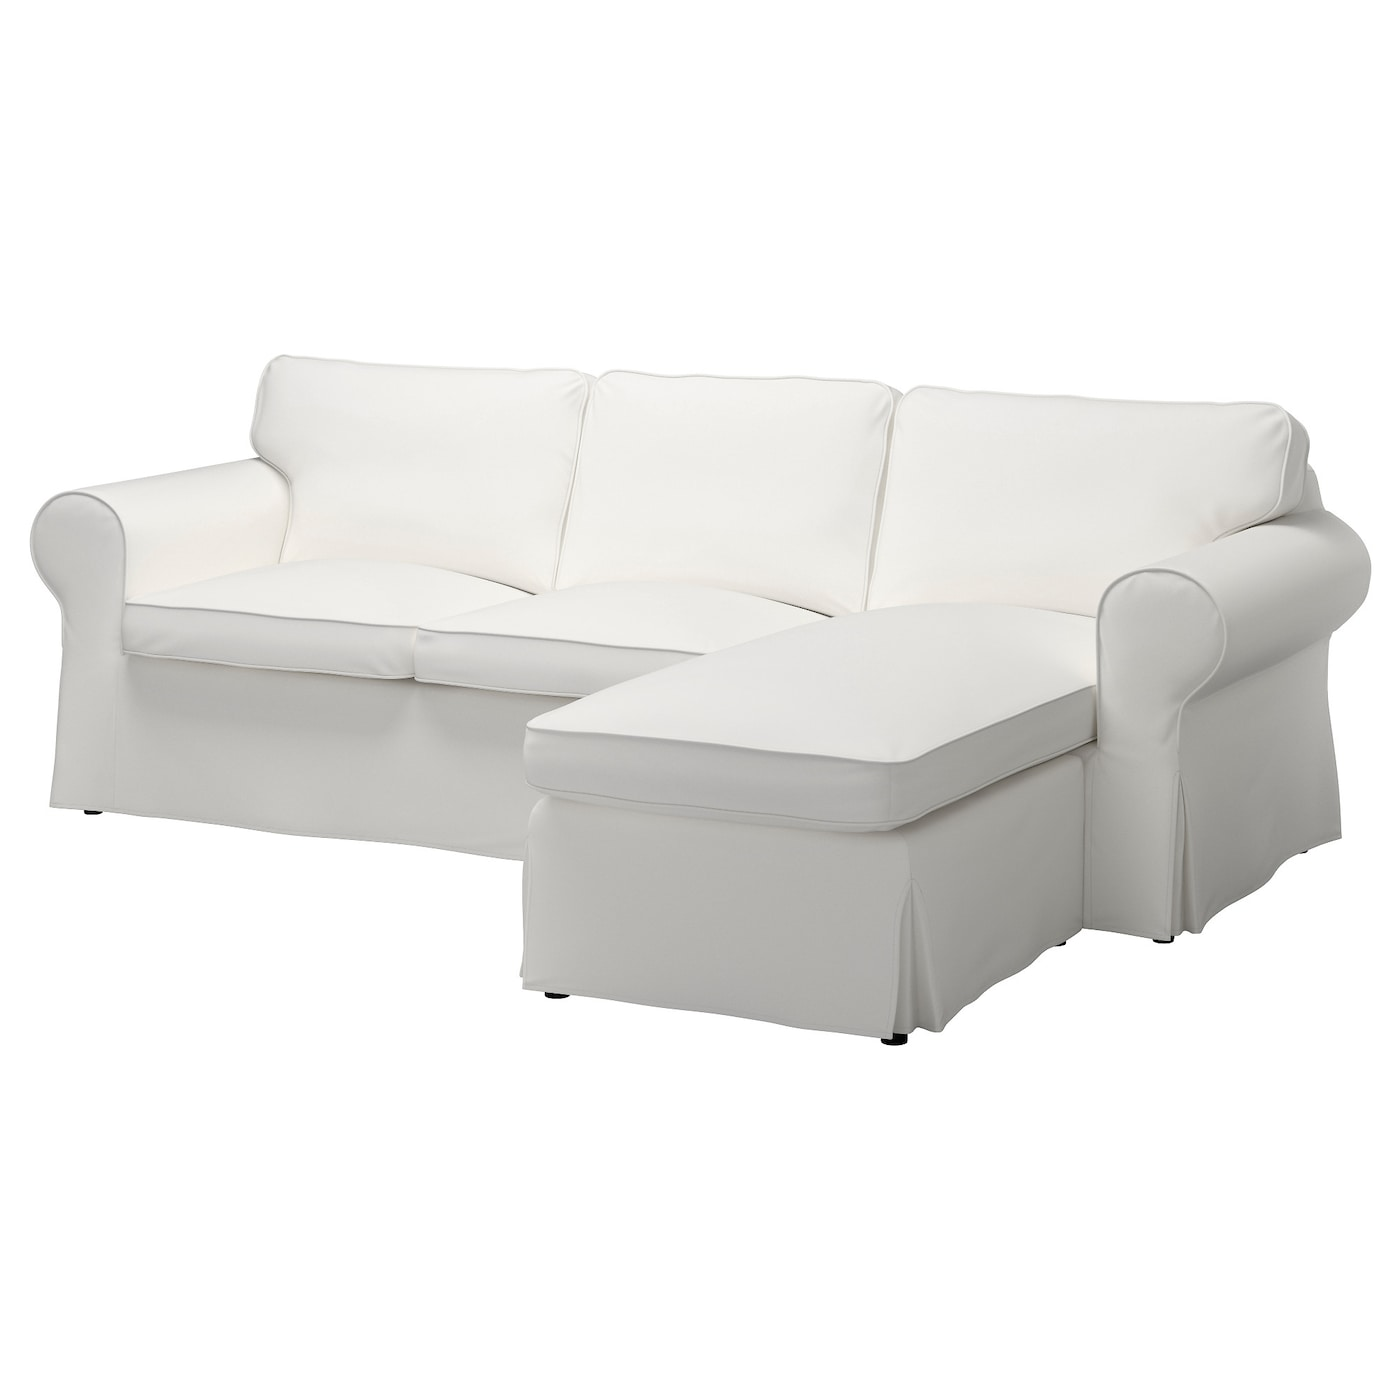 - EKTORP Cover For 3-seat Sofa - Vittaryd With Chaise Longue, Vittaryd White  - IKEA